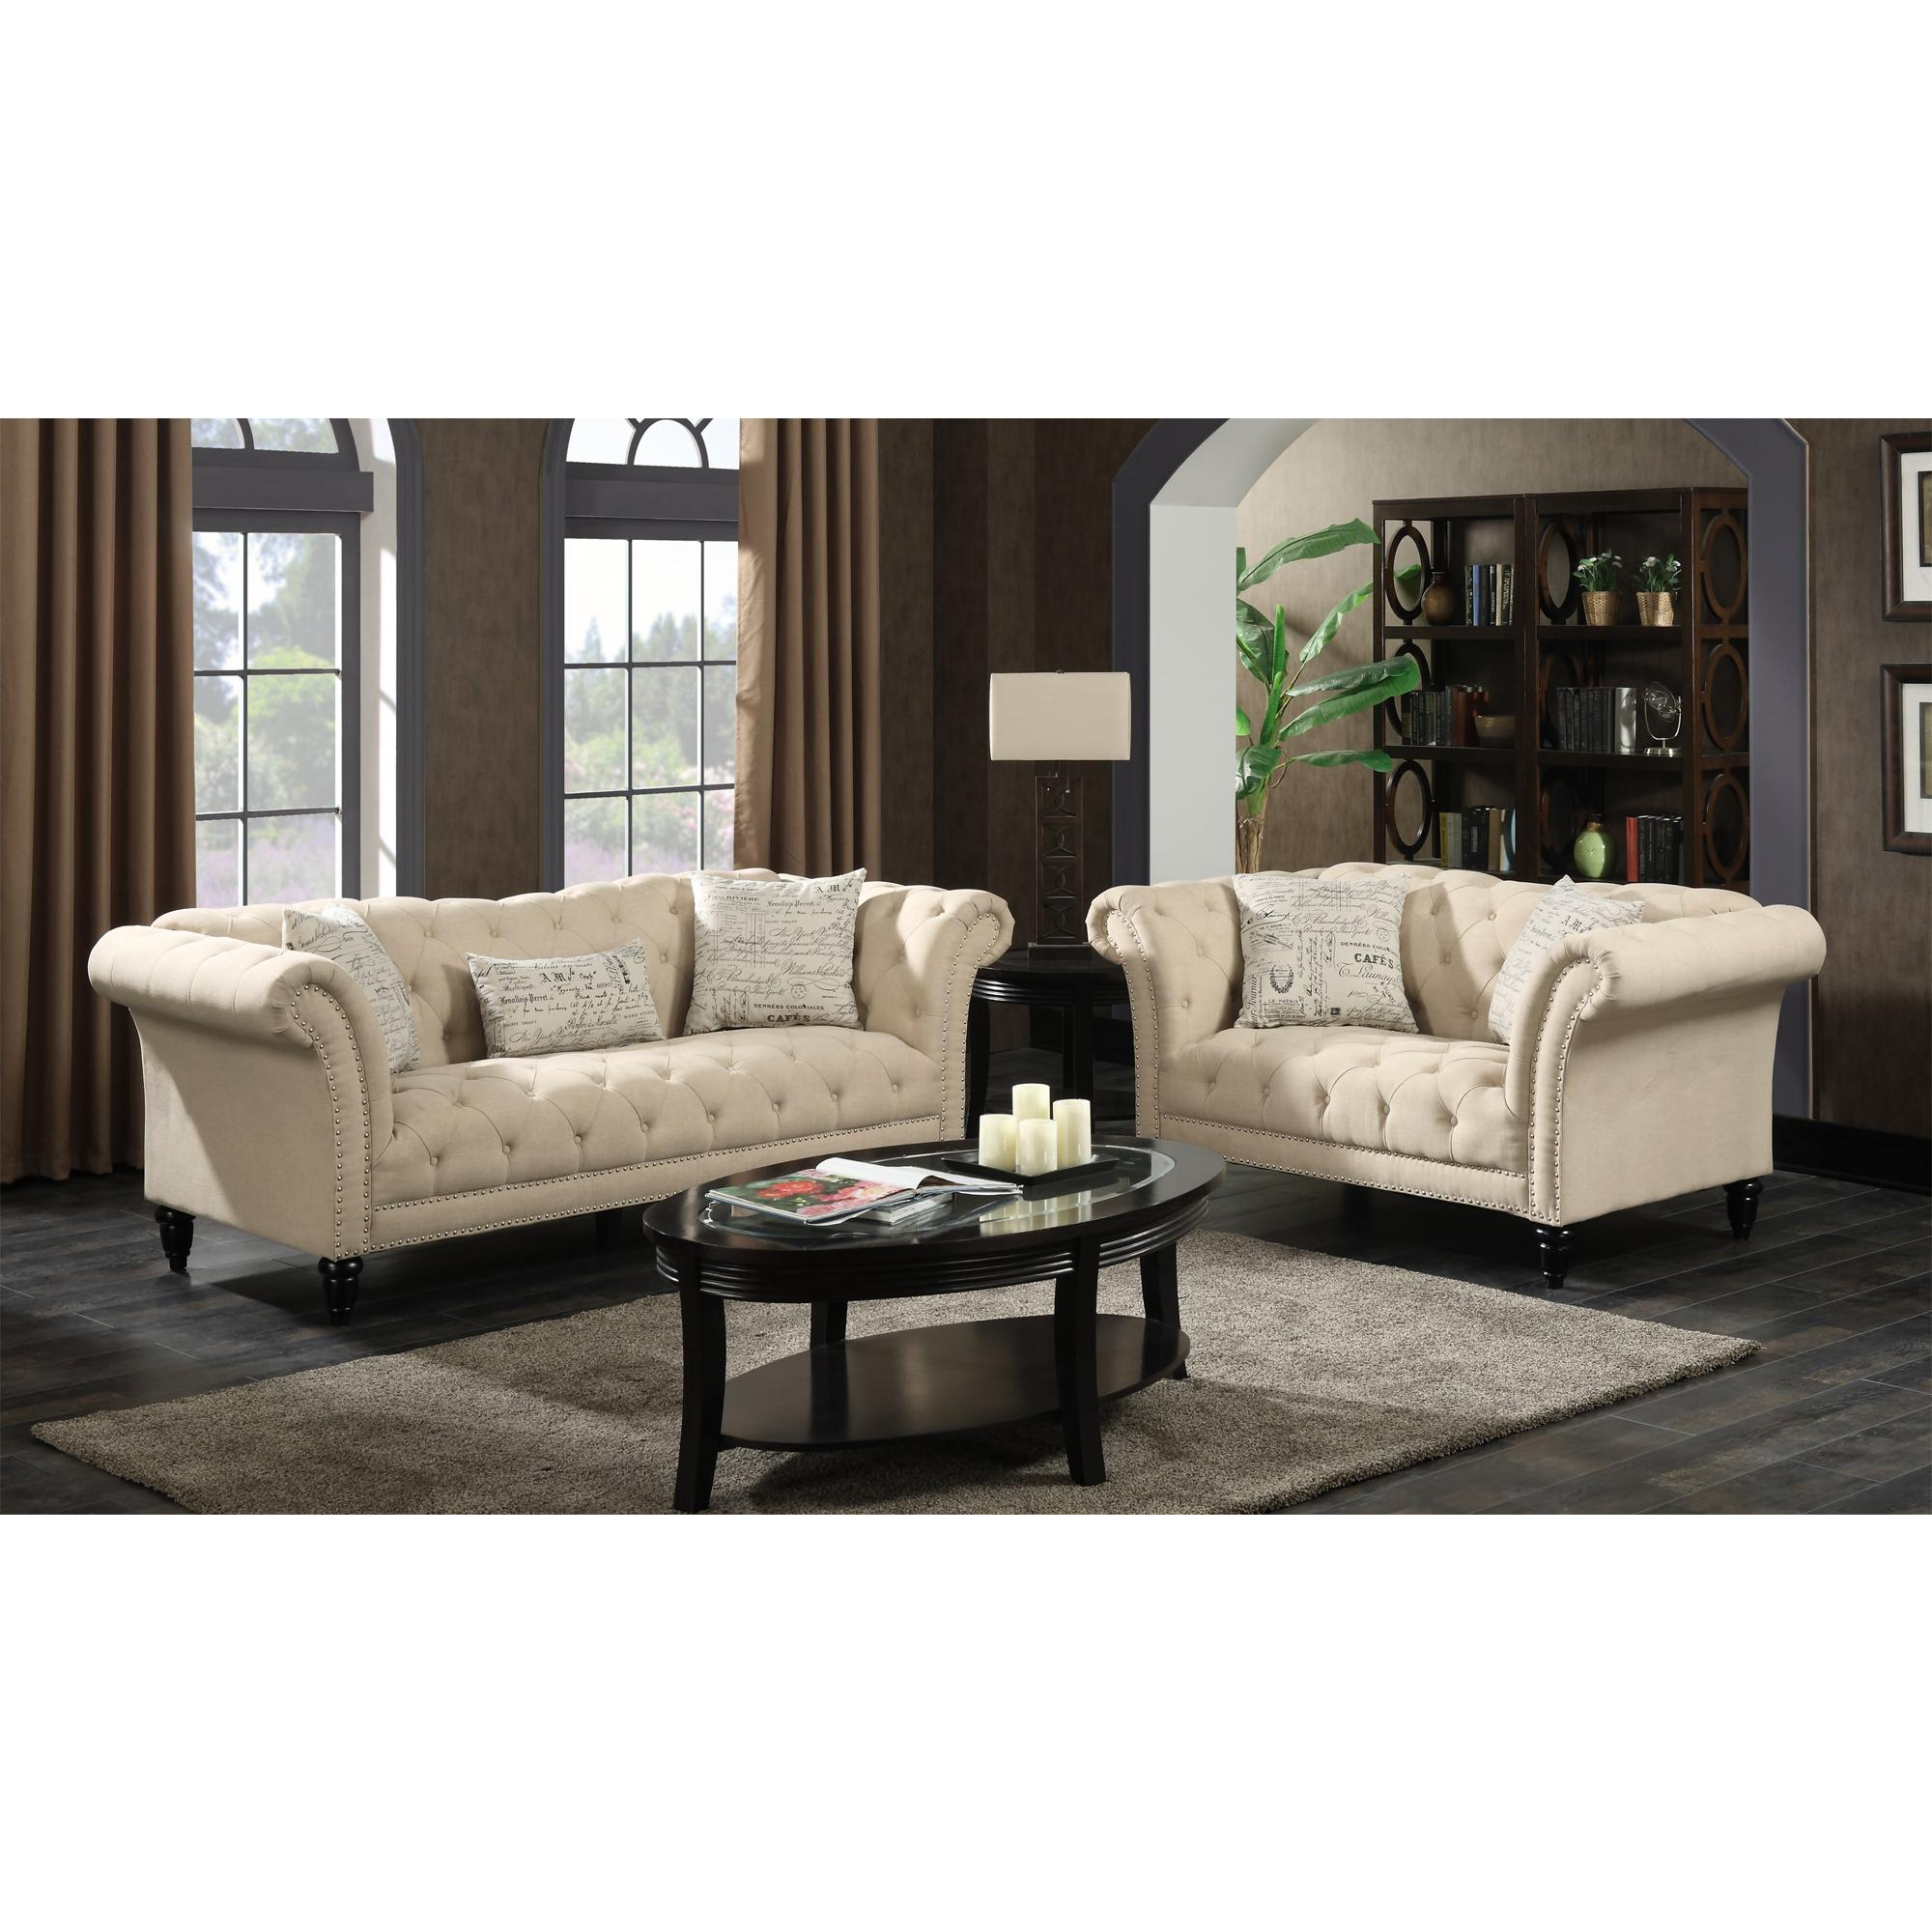 Admirable Picket House Twine Natural Fabric Sofa And Loveseat Set Ibusinesslaw Wood Chair Design Ideas Ibusinesslaworg